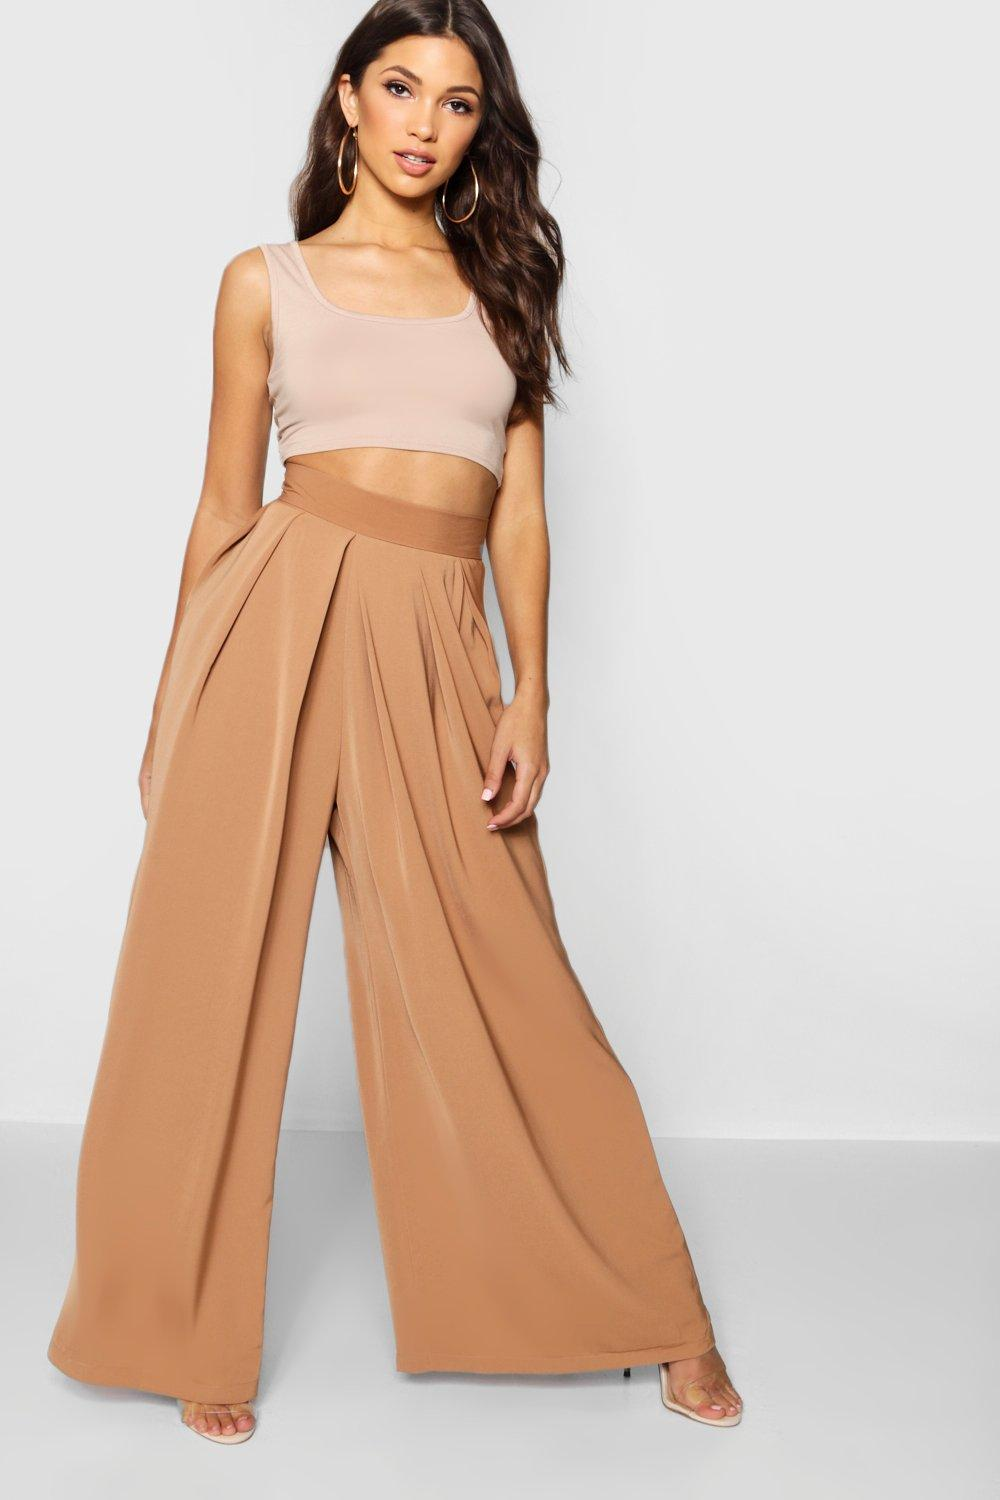 61a429dc9517e Wide Leg Palazzo Pants. Hover to zoom